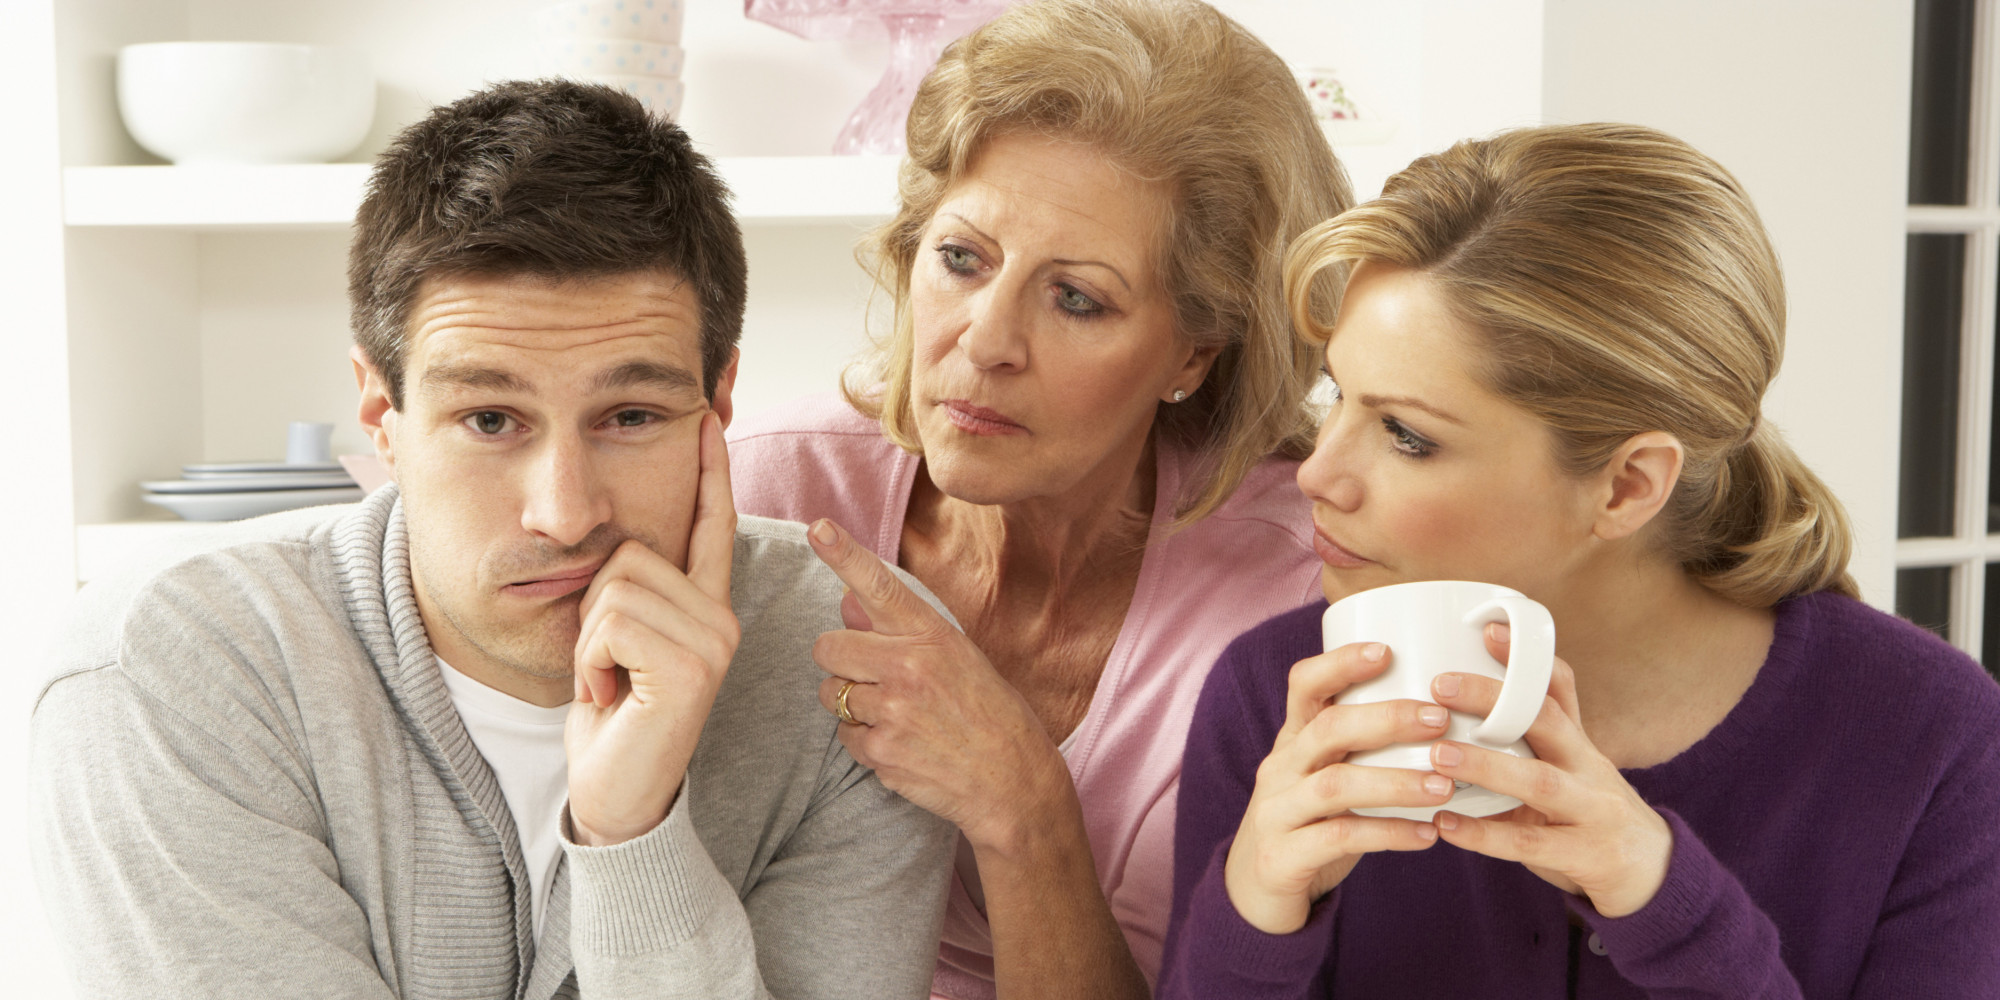 Family involvement in married life